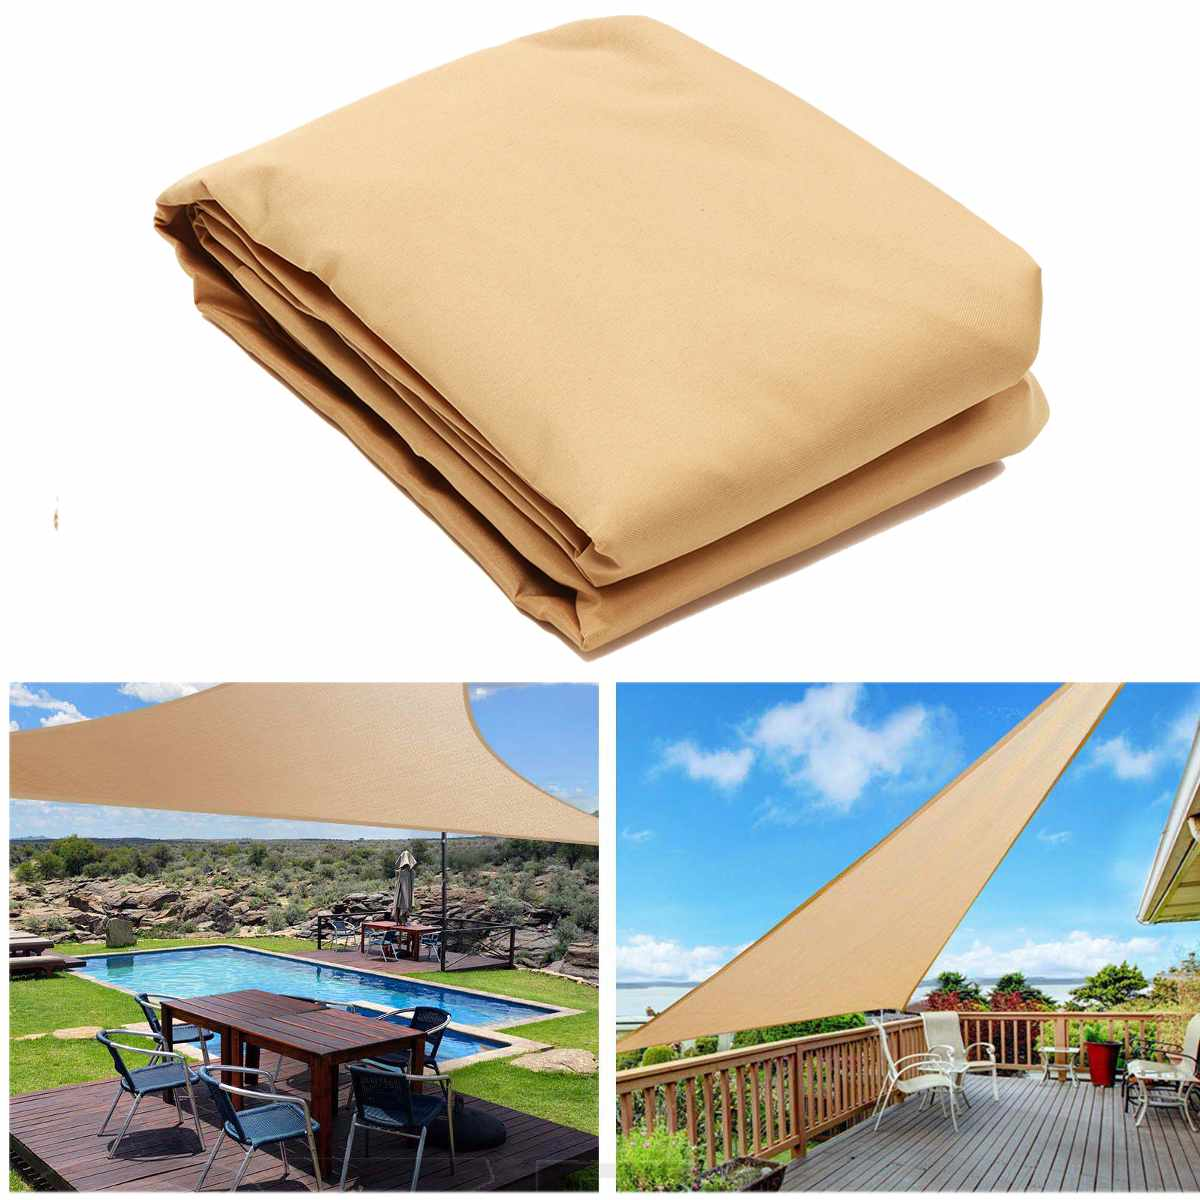 90% UV Protection 300D Waterproof Oxford Cloth Outdoor Sun Shade Sail Canopy Sunscreen Sails Net Canopies Yard Garden Encrypted|Shade Sails & Nets| |  - title=